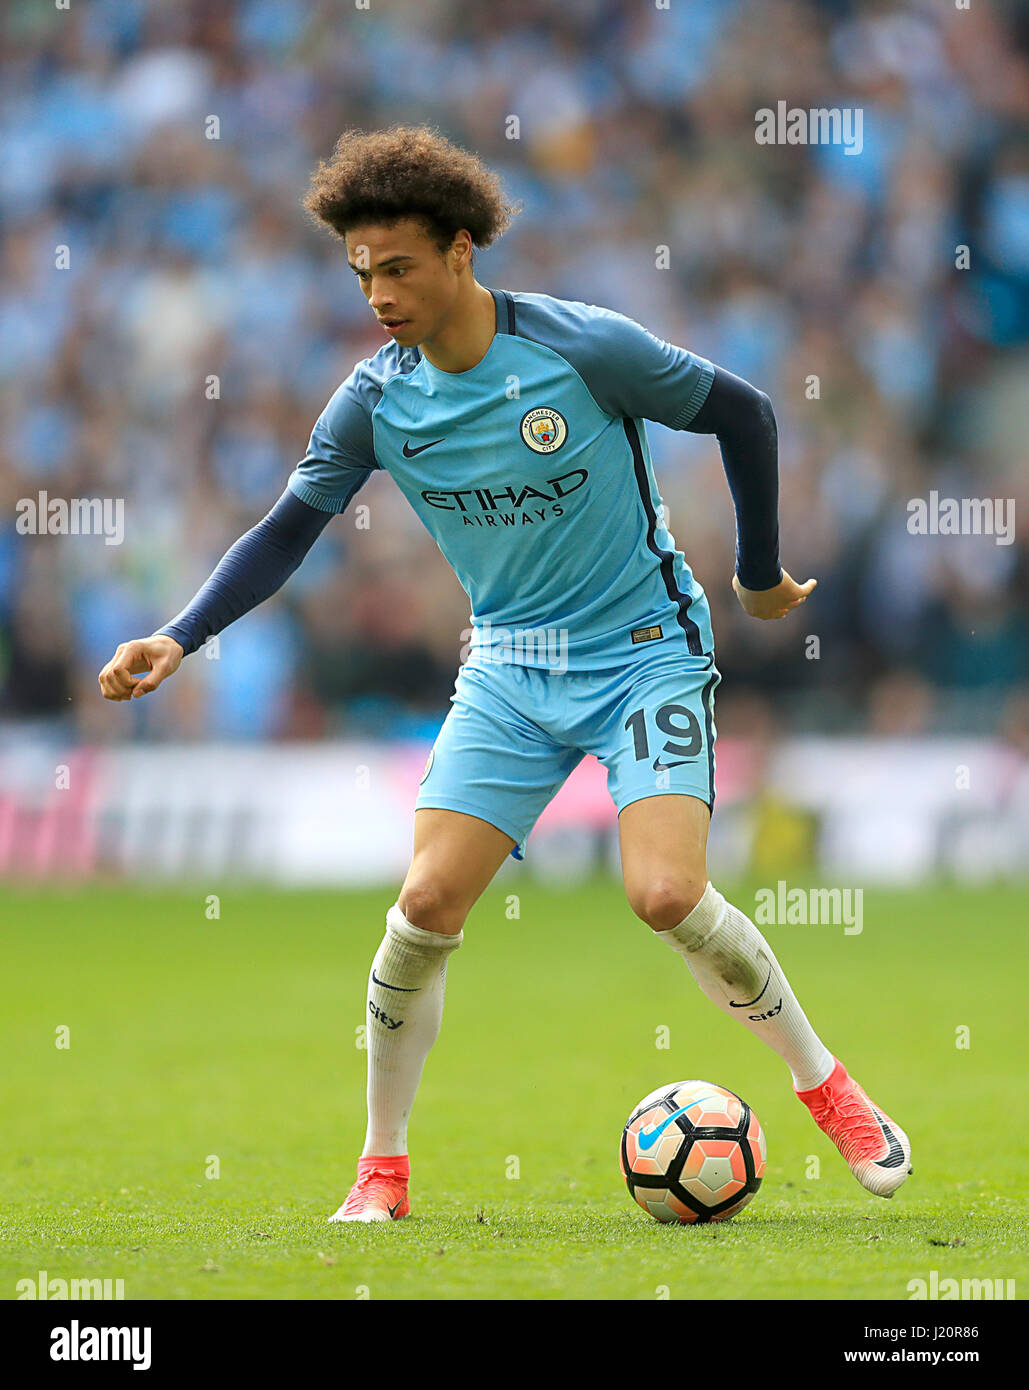 Manchester City s Leroy Sane during the Emirates FA Cup Semi